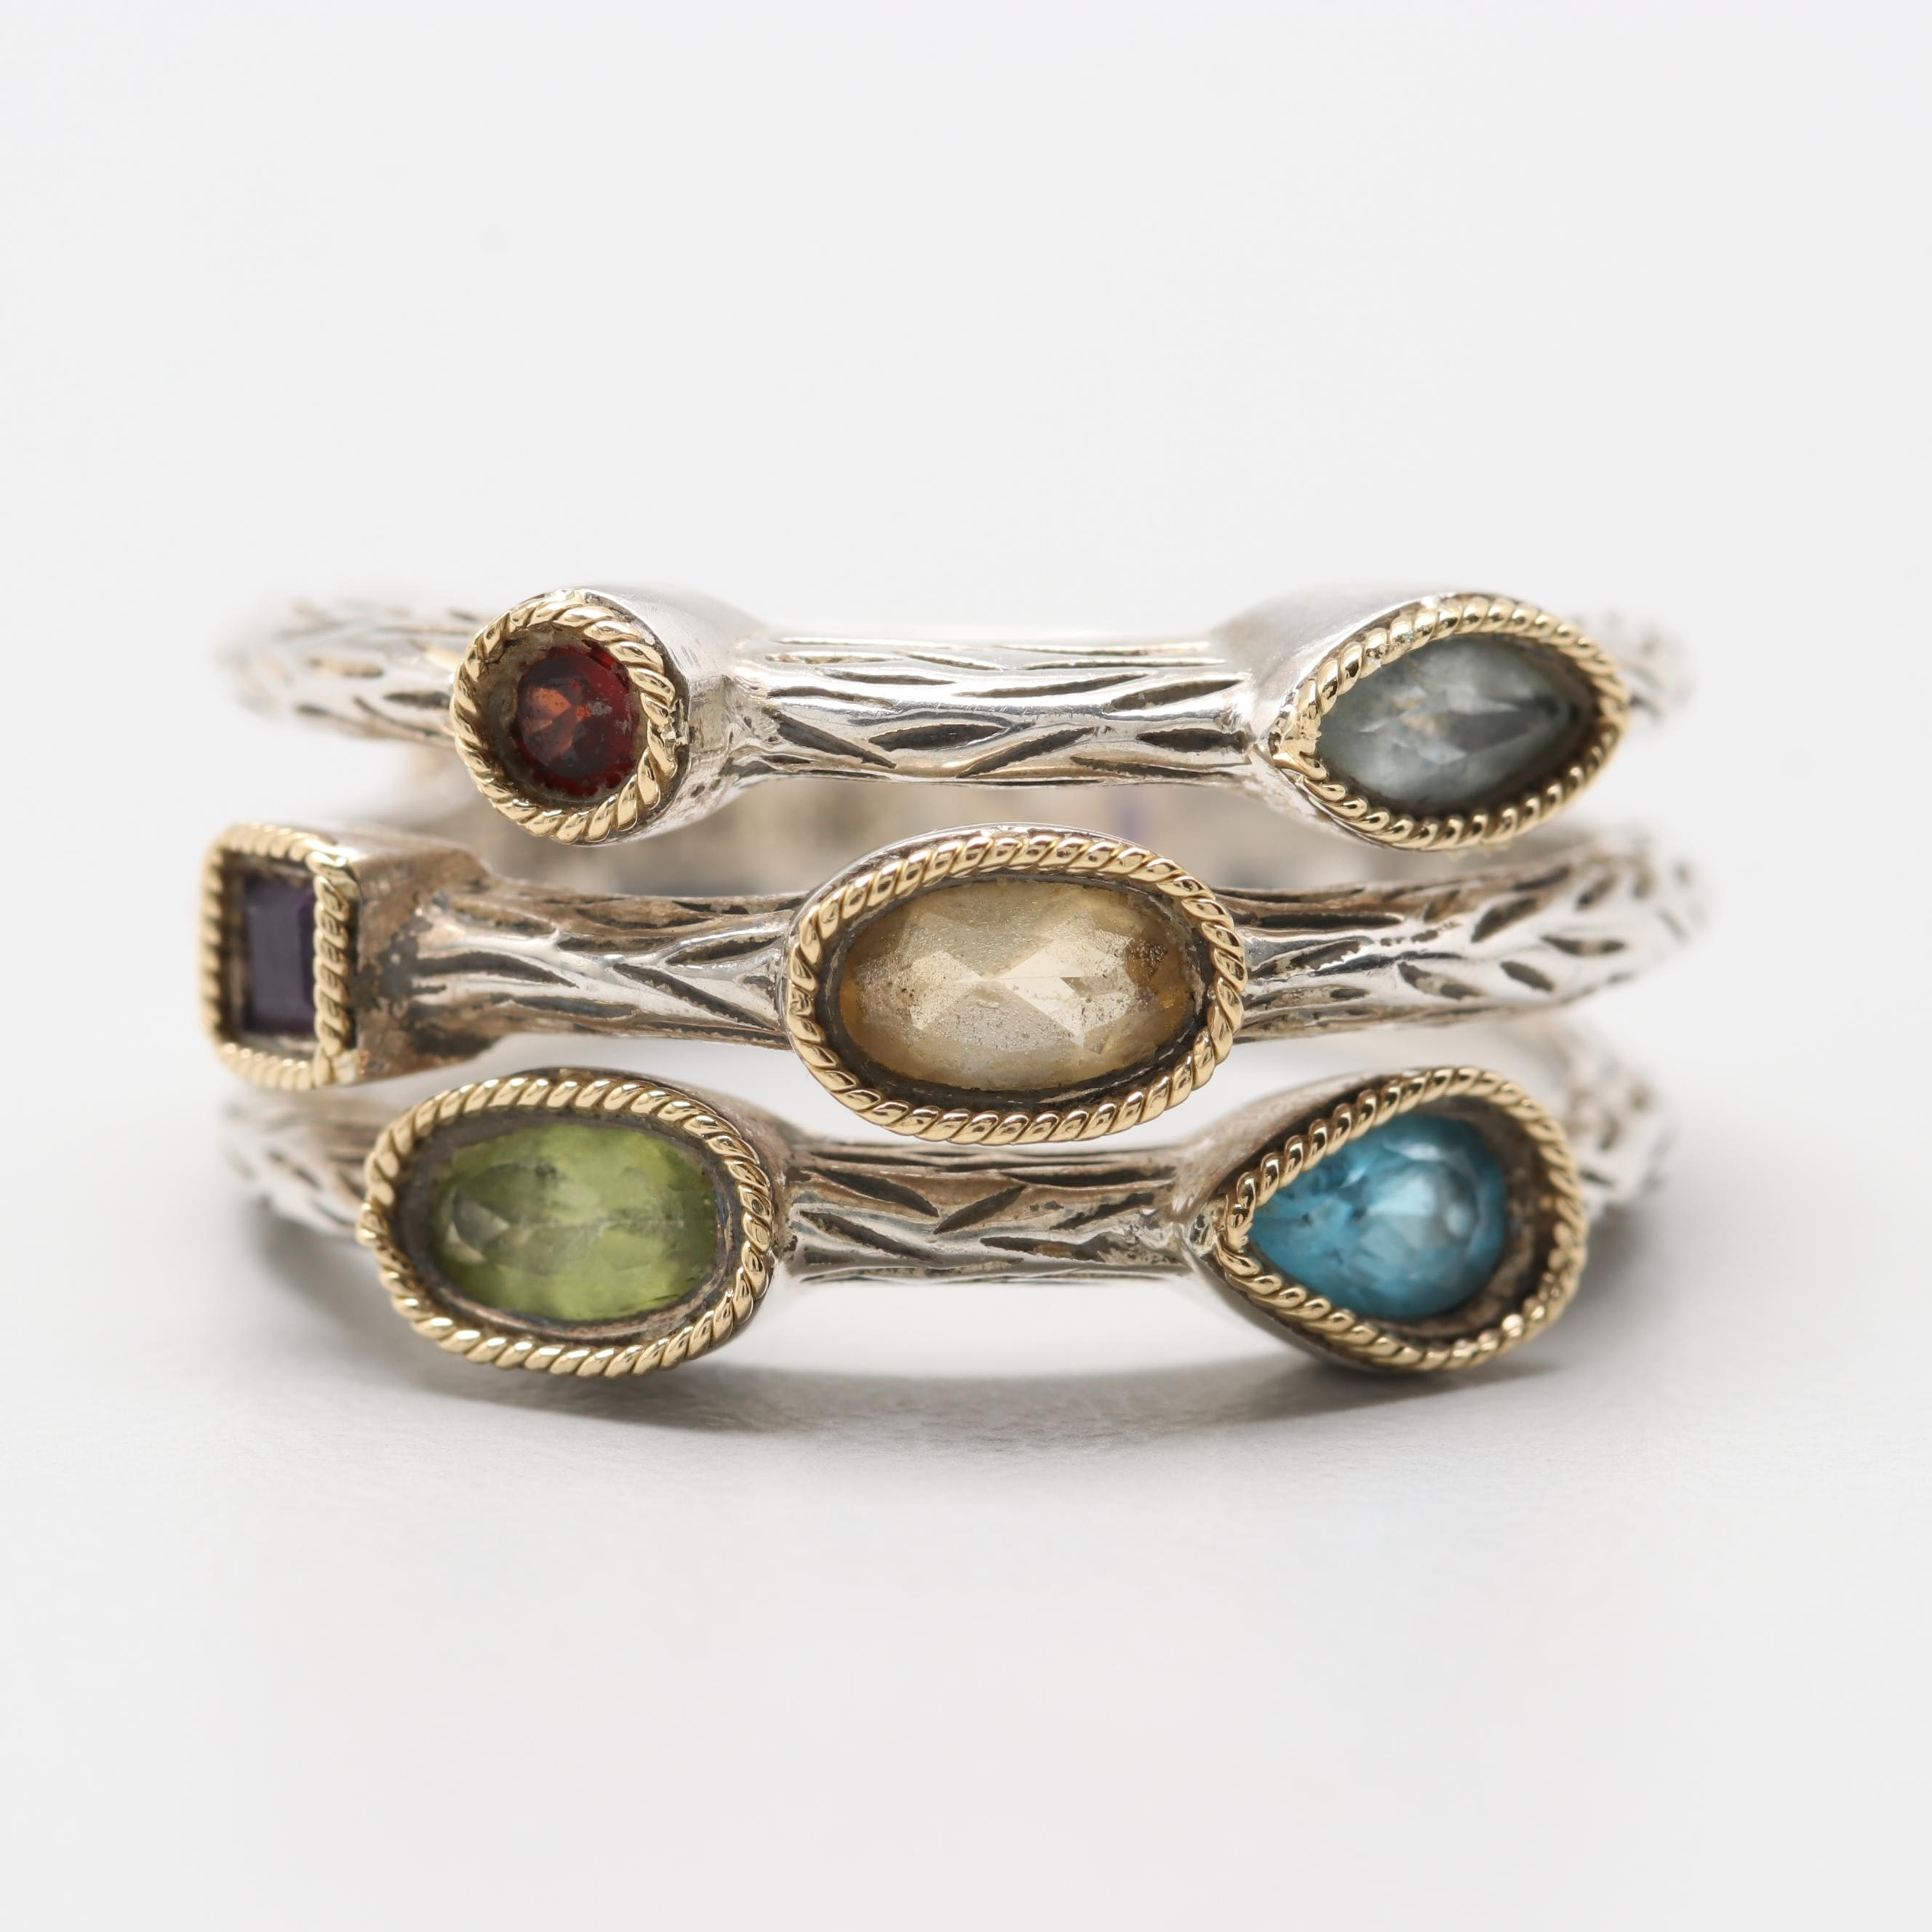 Effy Sterling Silver Aquamarine and Gemstone Ring with 18K Yellow Gold Accents